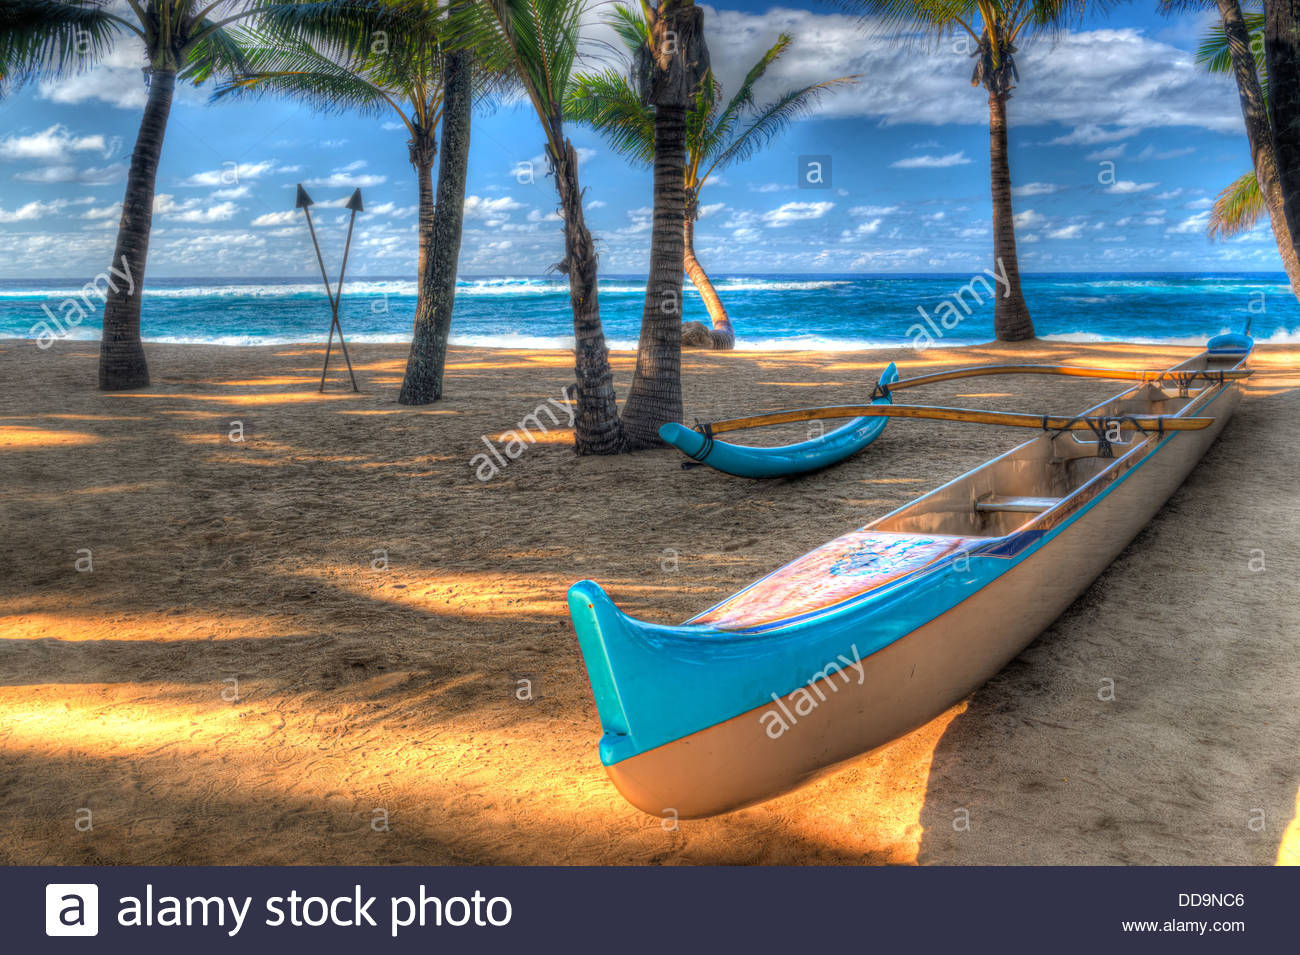 Outrigger canoe on a beach in Hawaii.  Photo has a surreal look.  It is shot using HDR technique. - Stock Image